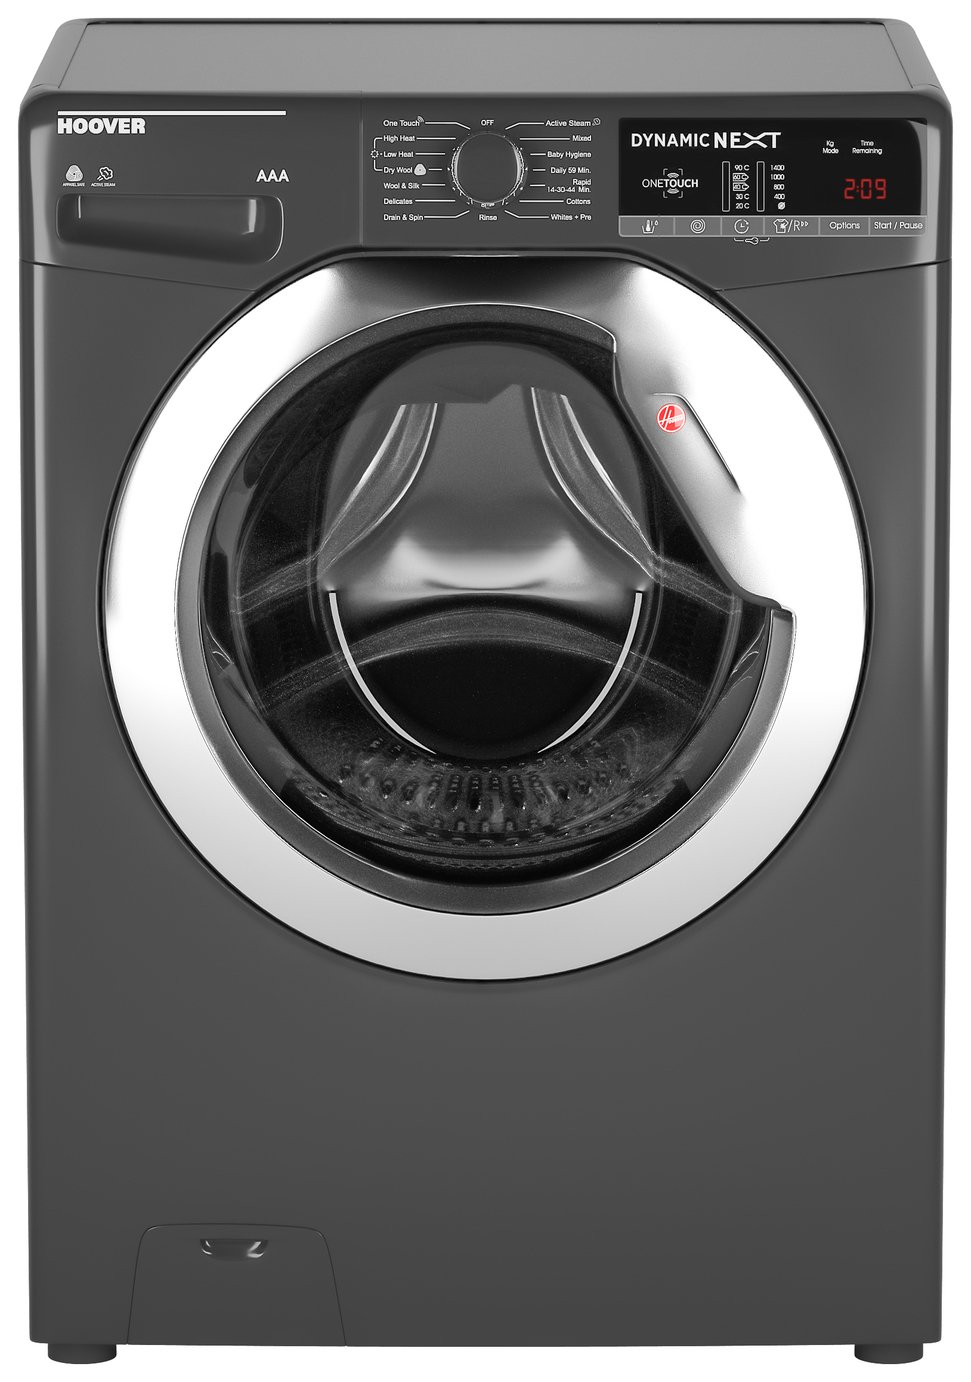 Hoover WDXOA485CR 8KG 5KG 1400 Spin Washer Dryer - Graphite from Hoover